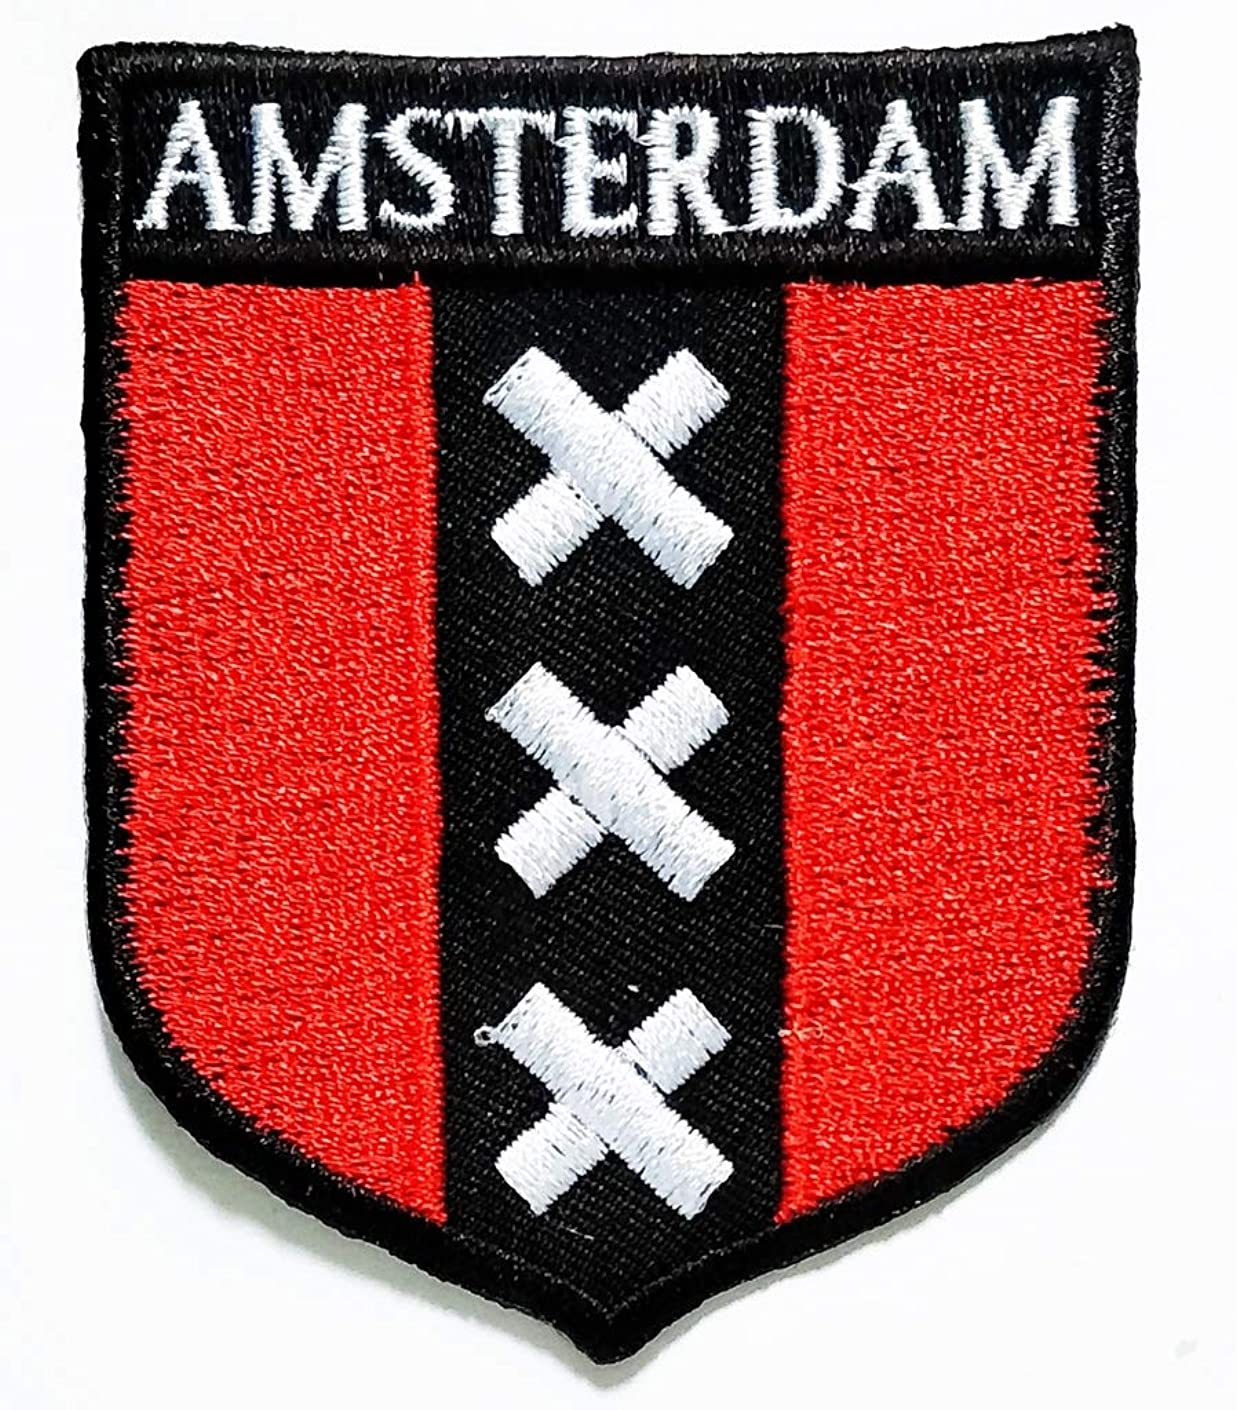 PP Patch Amsterdam Flag National Emblem Iron On Sew on Uniform Jeans Clothes Hat Bag Dress Hat Cap Polo Backpack Ideal for Gift